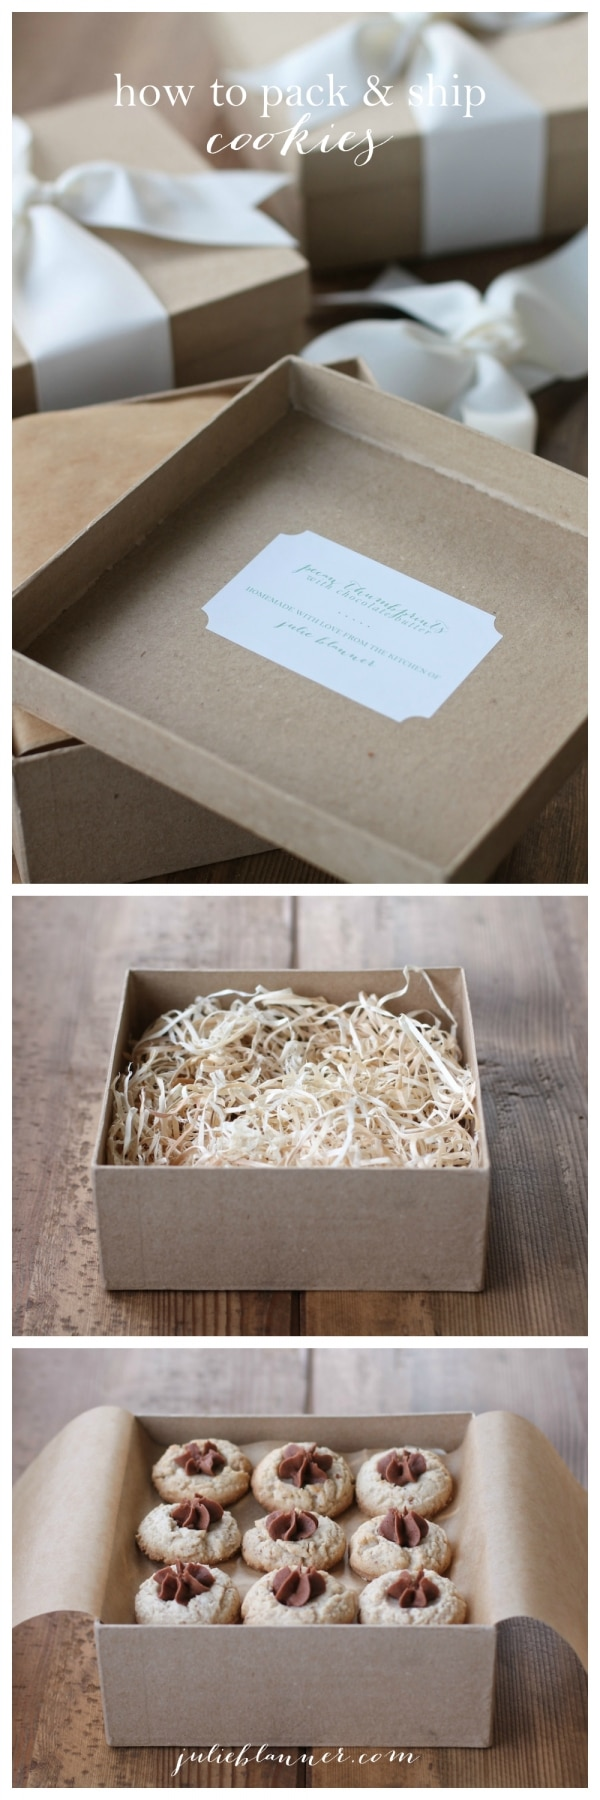 20 Tips for Packaging Christmas Cookies: Packaging Cookies for Shipping | thegoodstuff